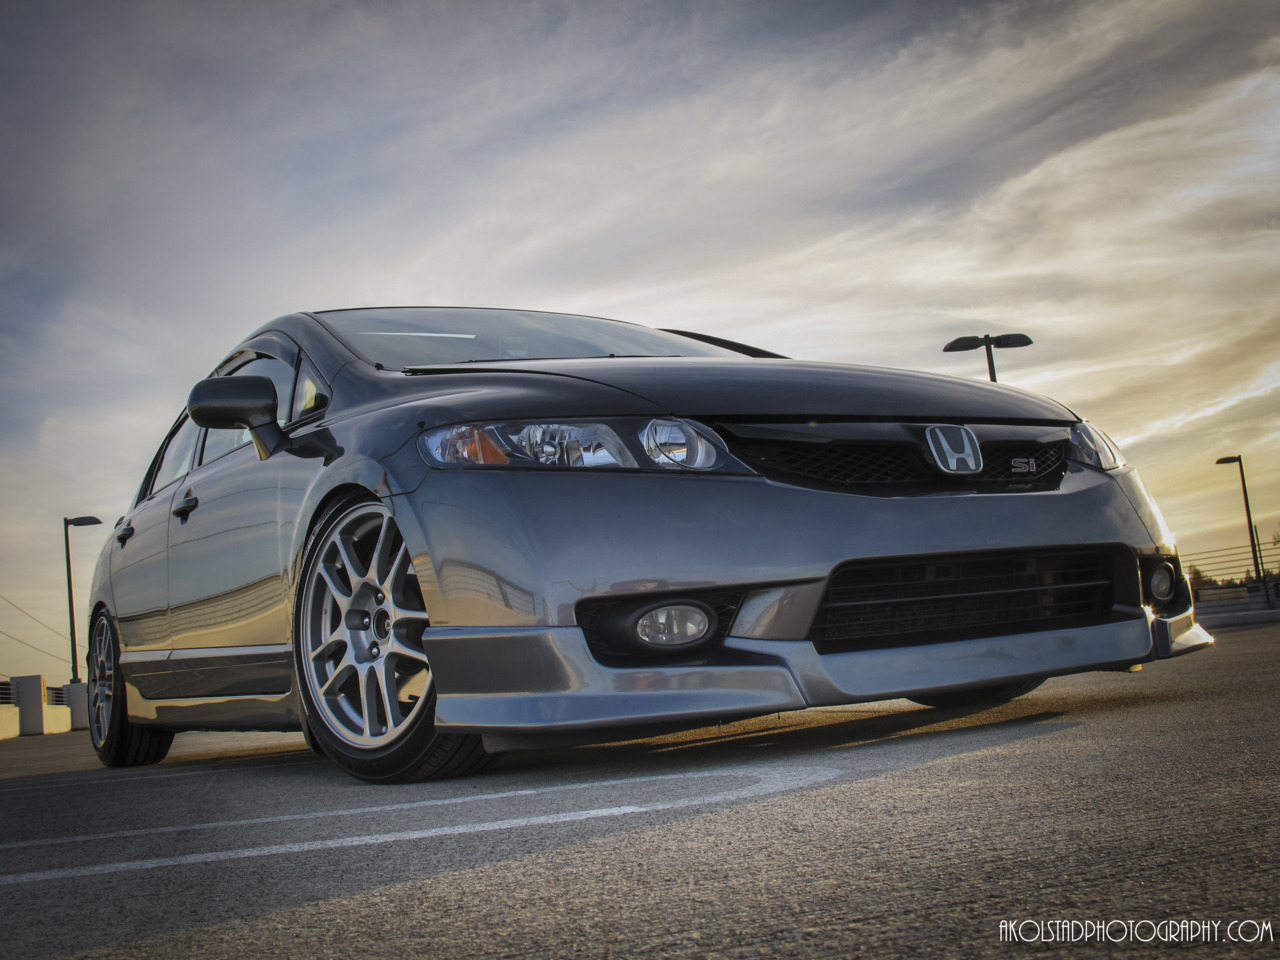 Honda Civic Si FA5